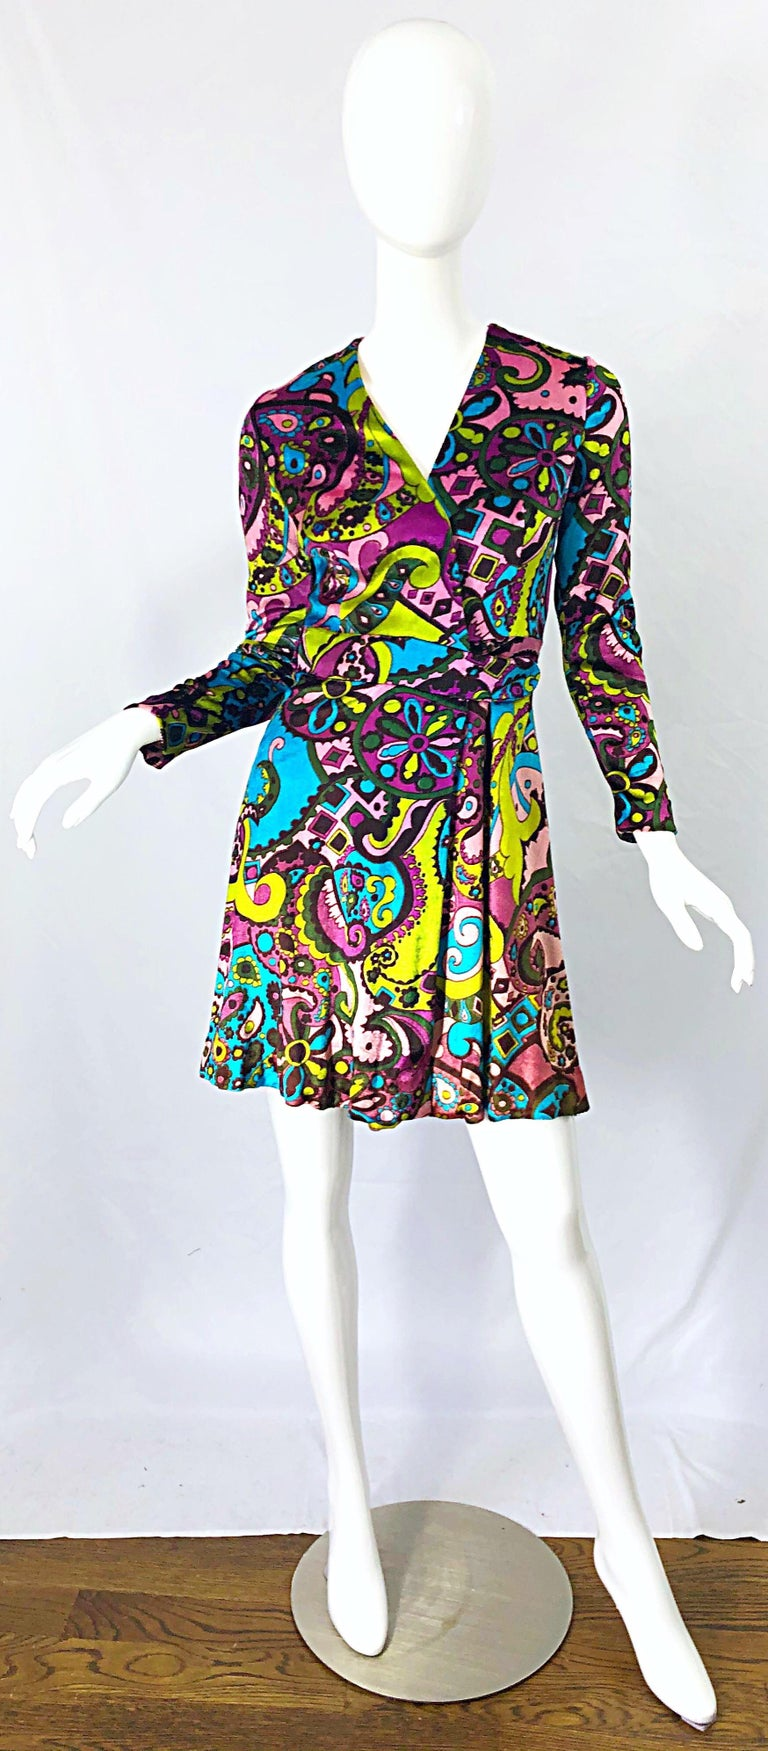 Amazing 1970s psychedelic paisley print colorful velour wrap dress ! Features vibrant colors of pink, blue, green, turquoise, chartreuse green and purple throughout. Interior ties on the left side of the waist, with hook-and-eye closure on the